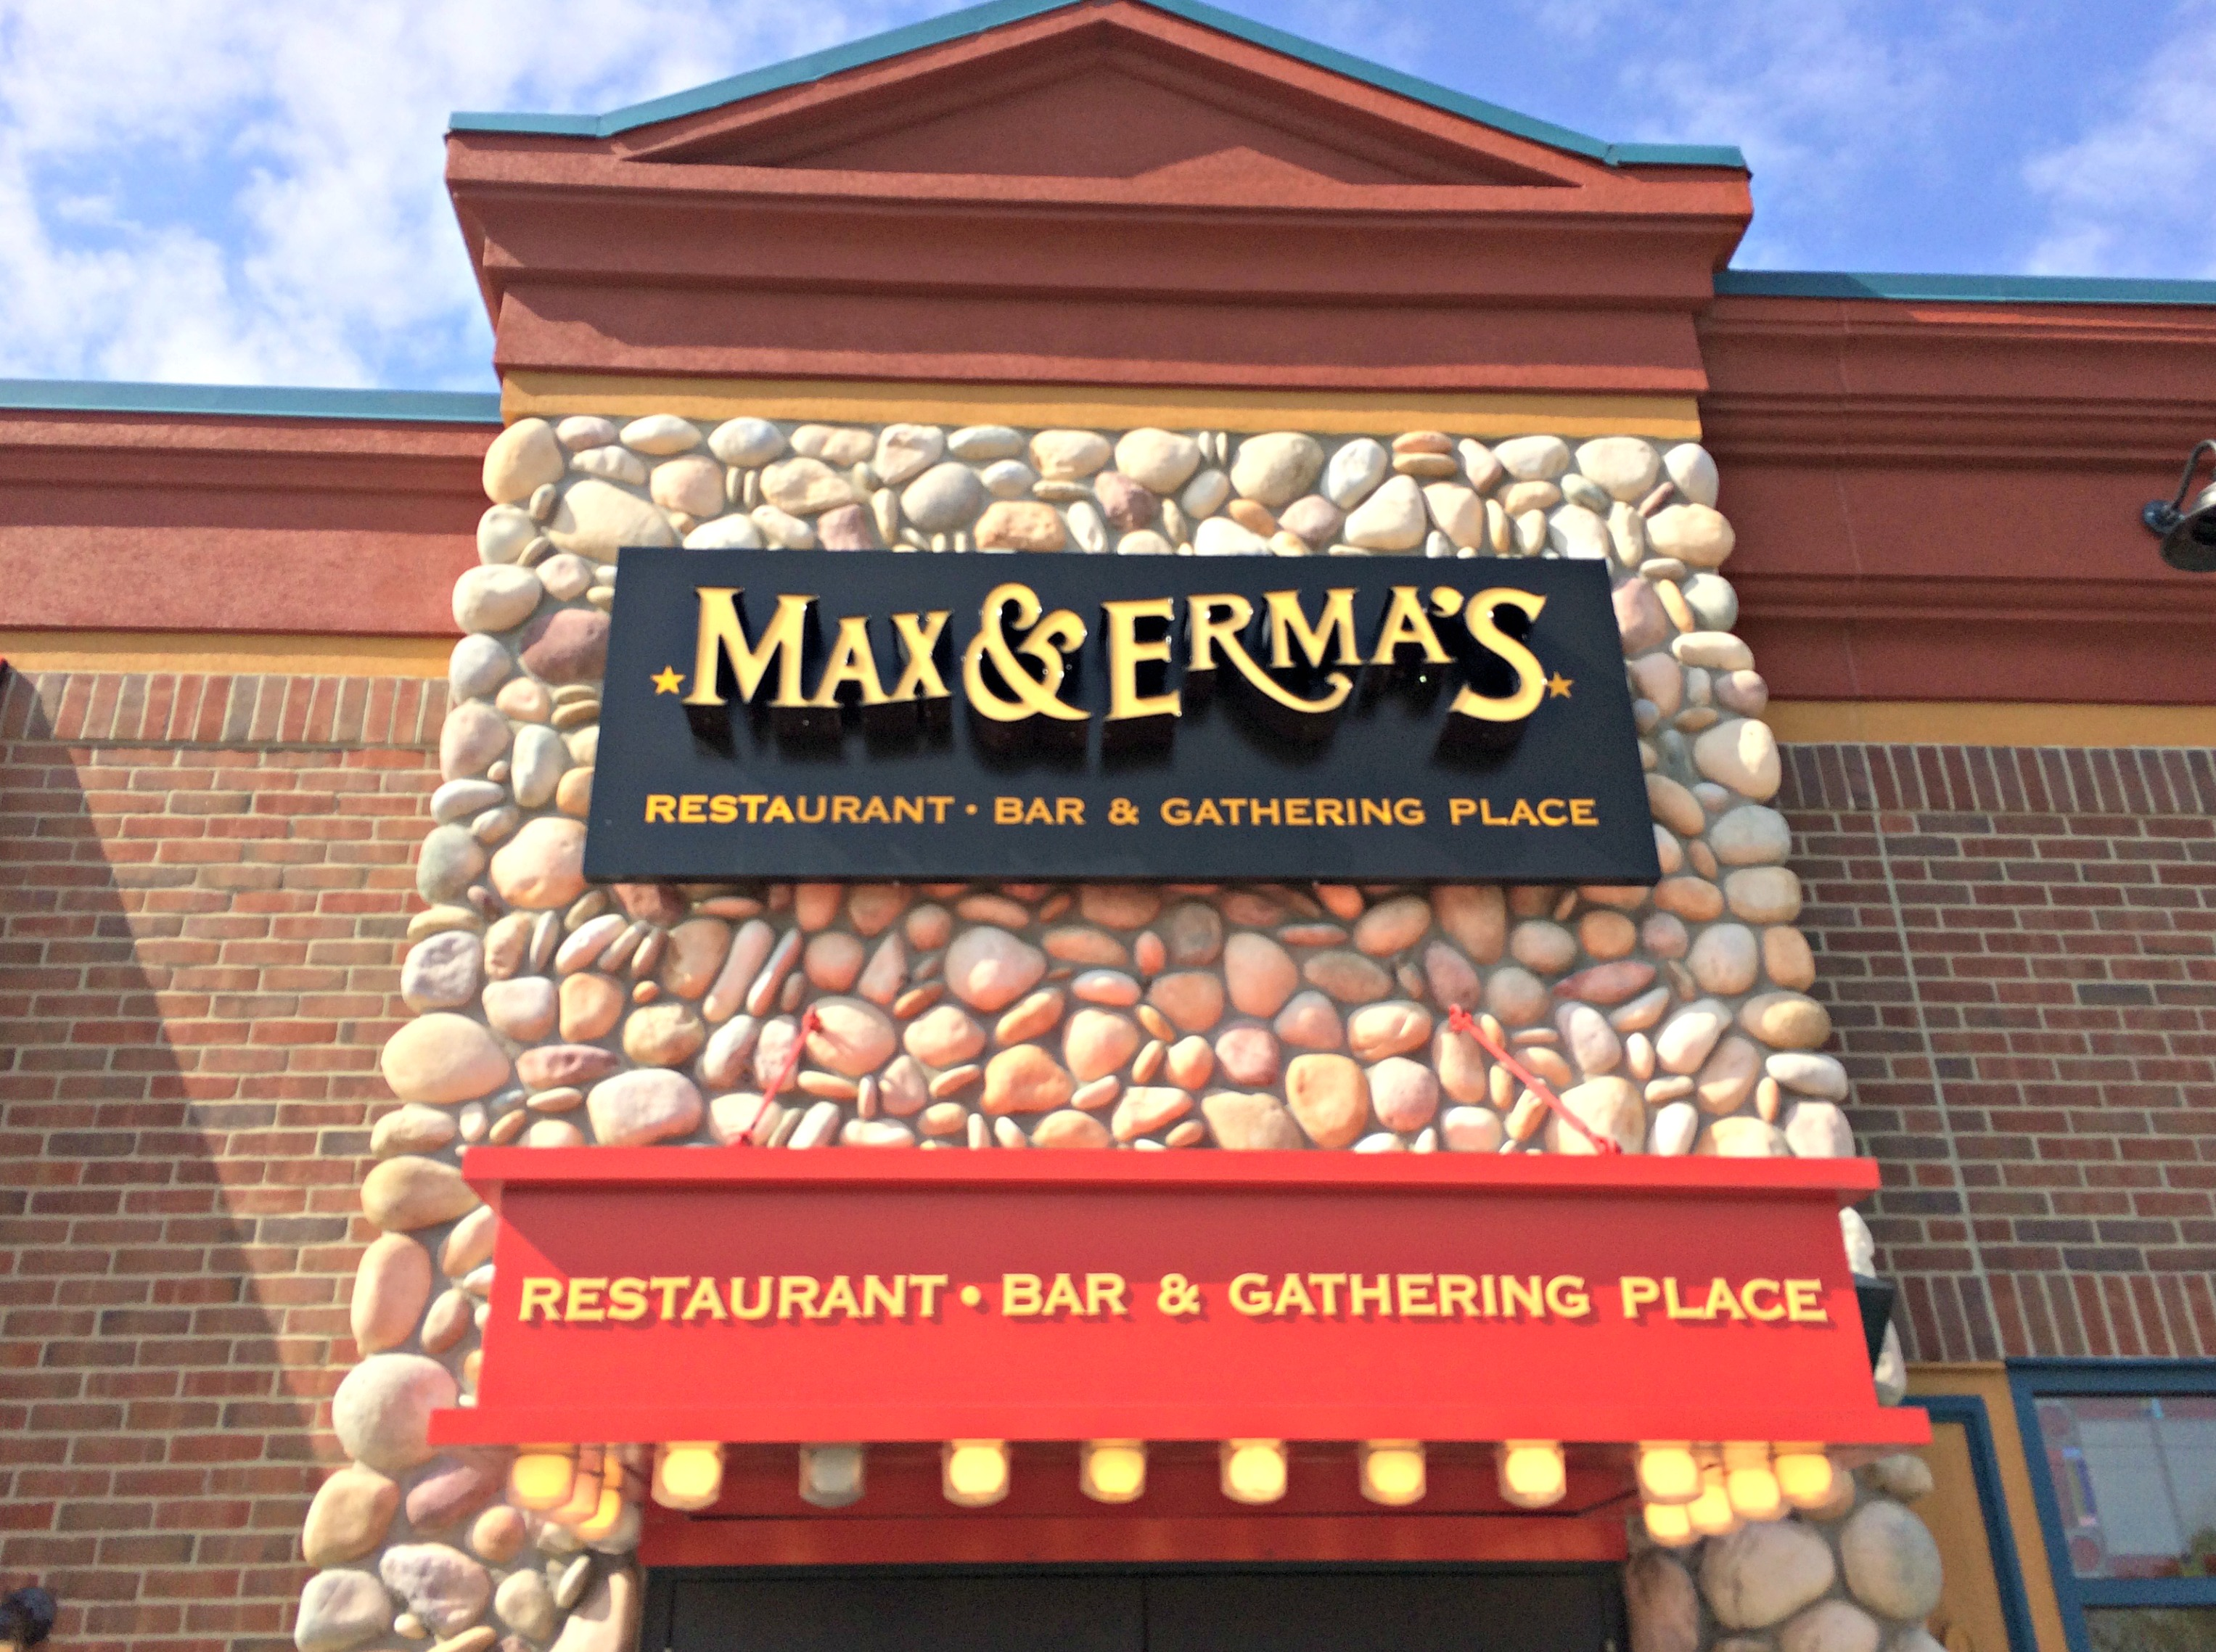 Max & Erma's restaurant and bar